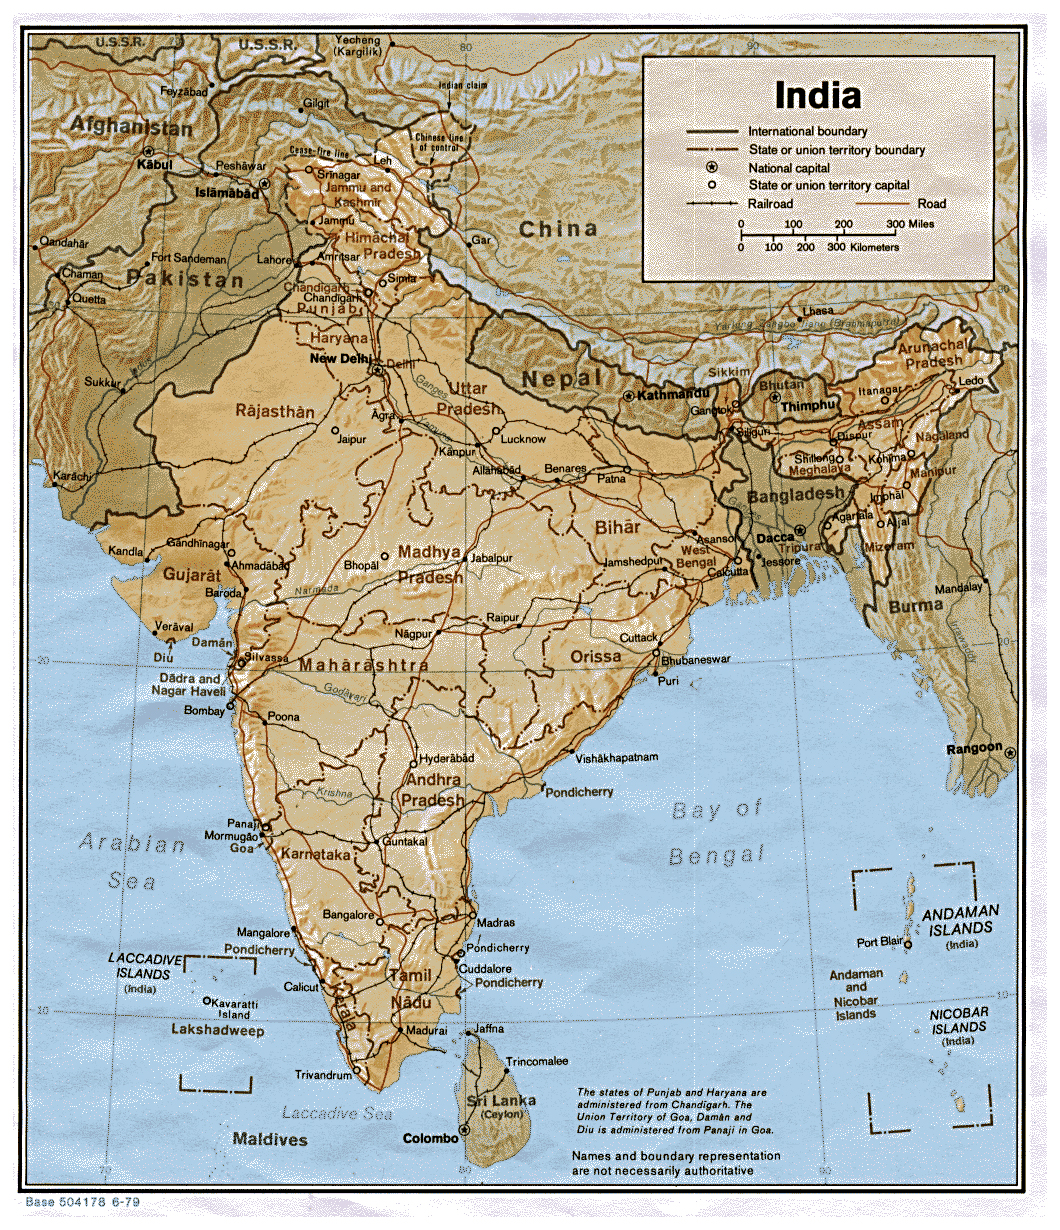 India Detailed Map - 2019 Edition